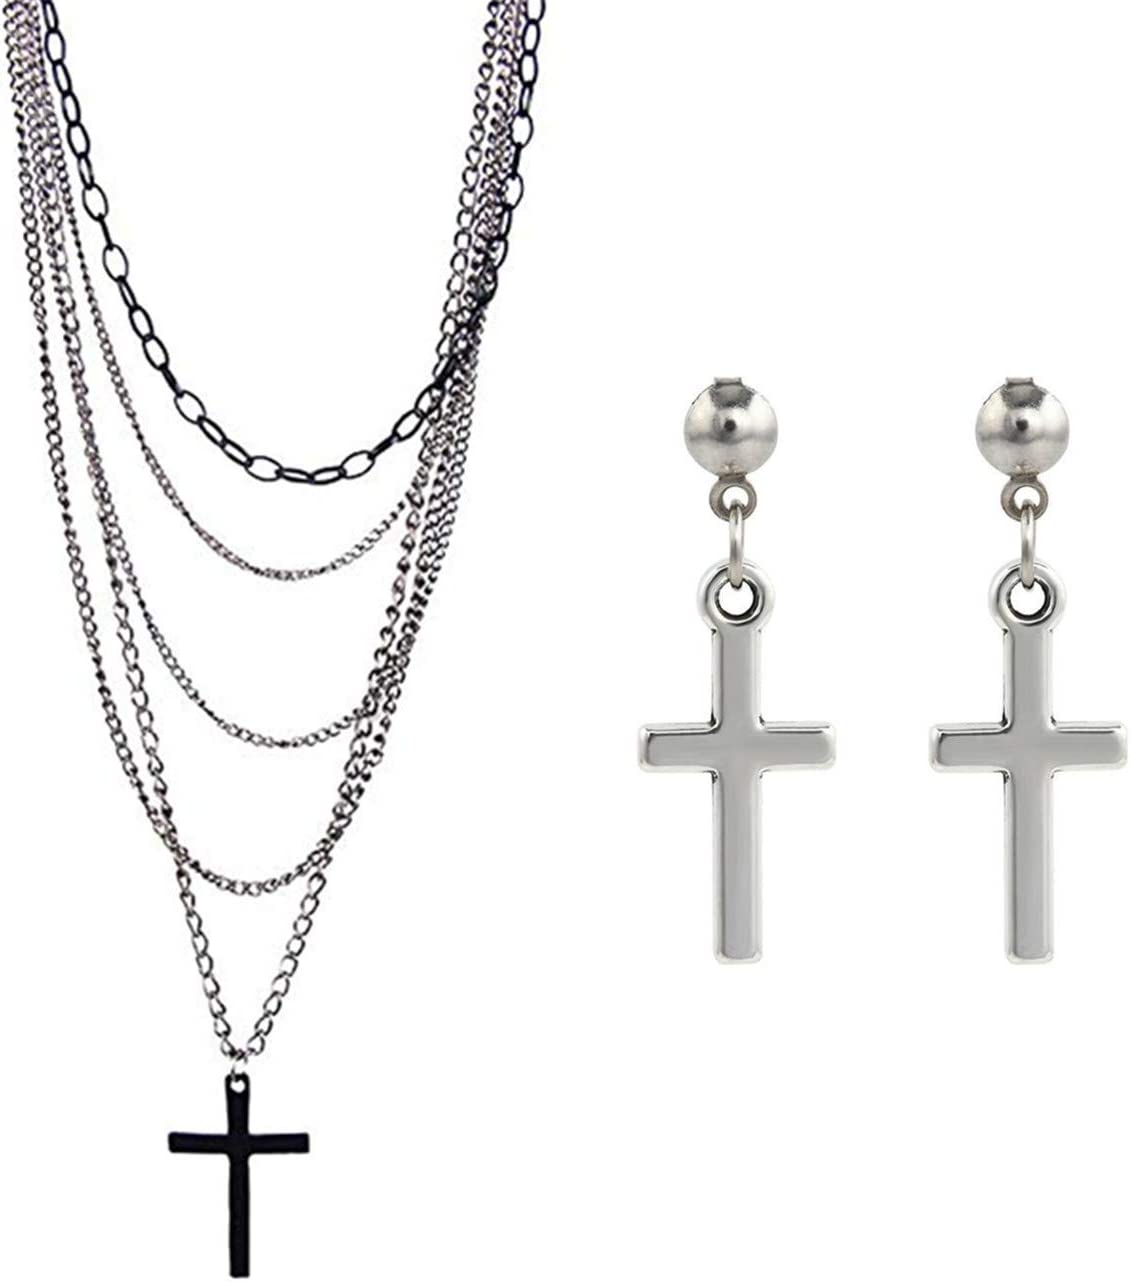 PPX Multilayer Gothic Retro 80s Black Long Chain Fashion Cross Necklace and Stainless Steel Dangling Cross Earrings for Men Women-with Storage Box